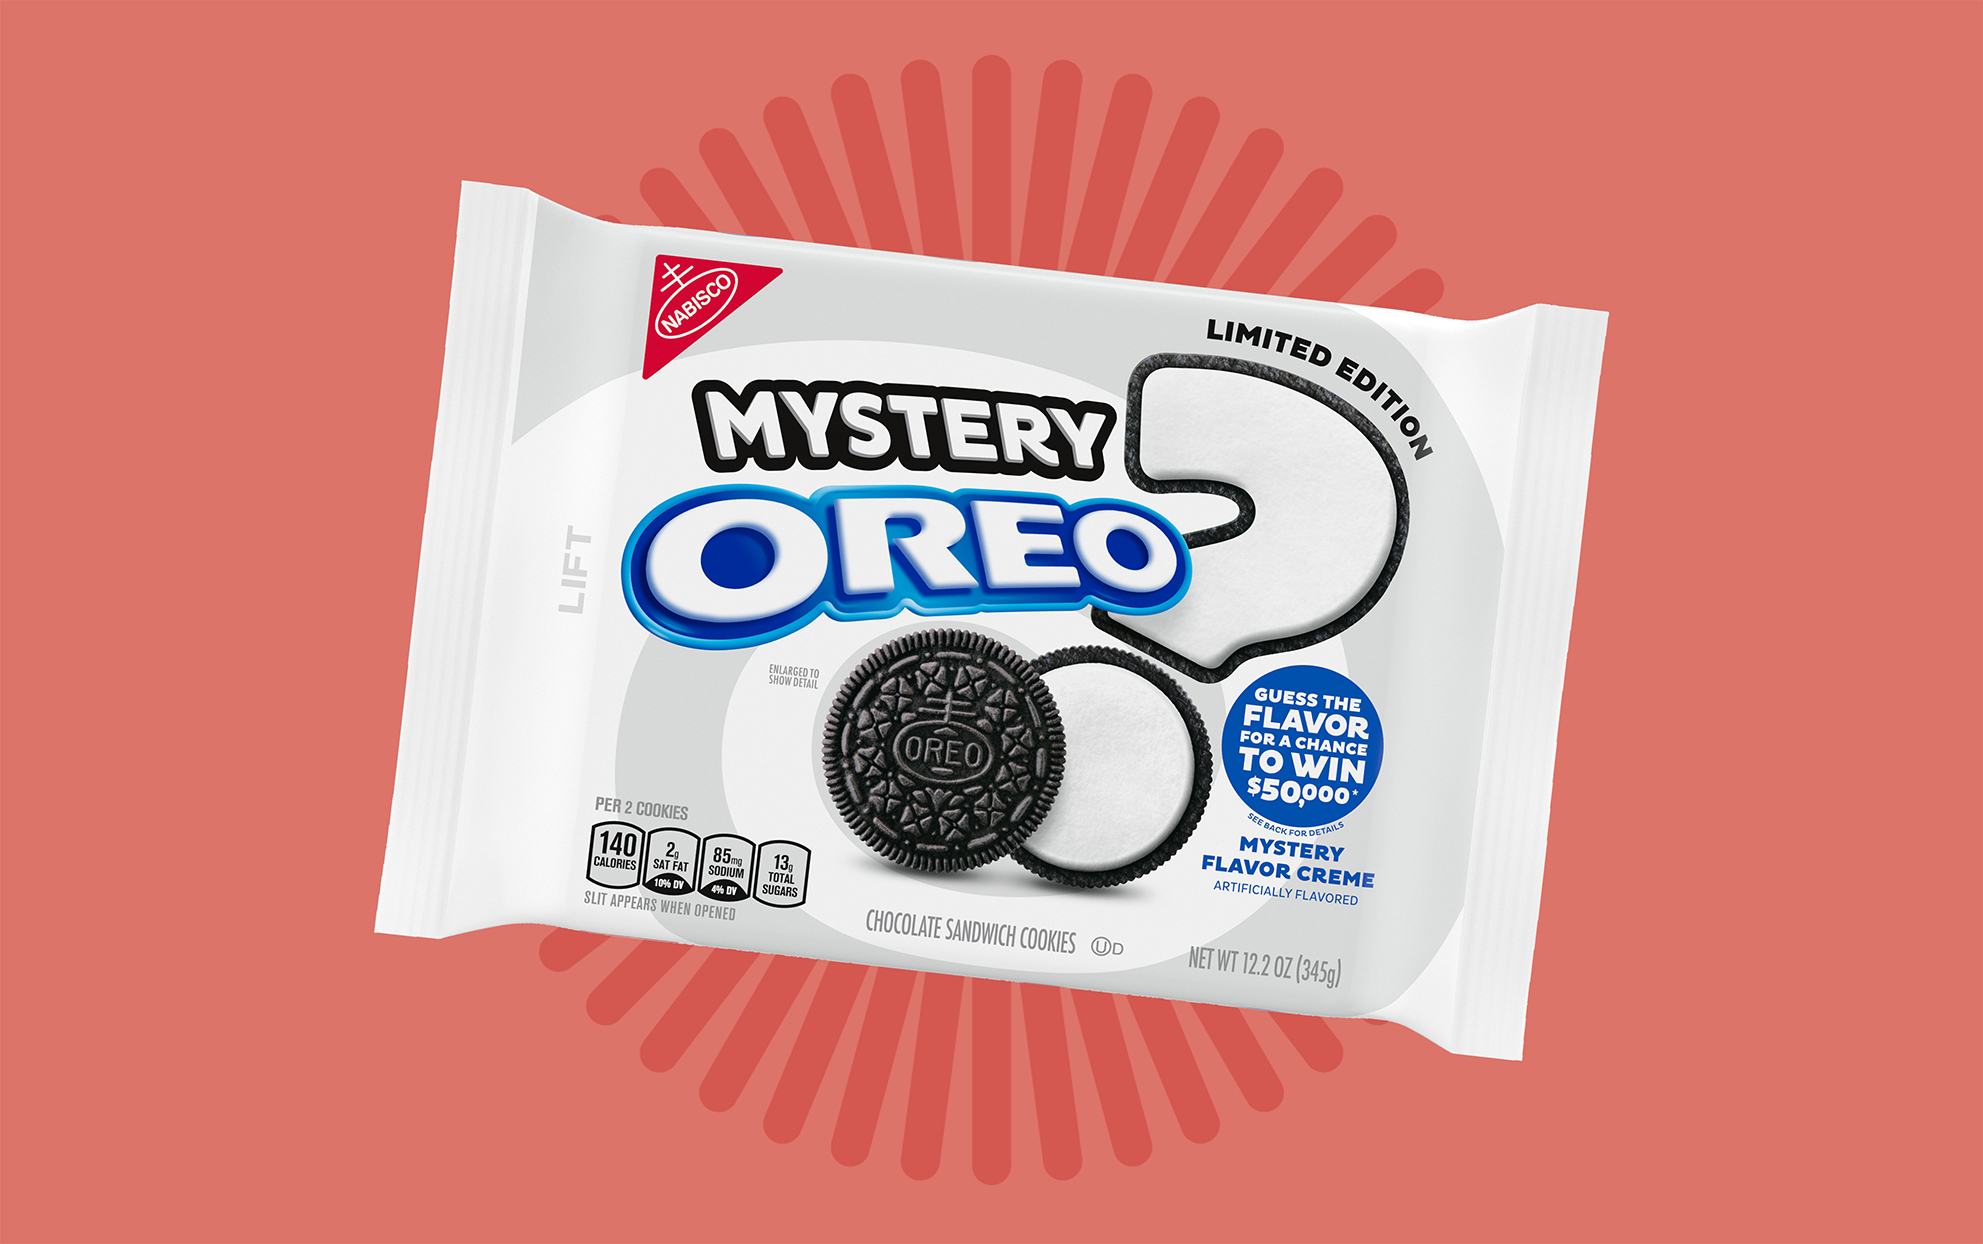 We Tried the New Mystery Oreo Flavor, And We're Divided on What It Could Be